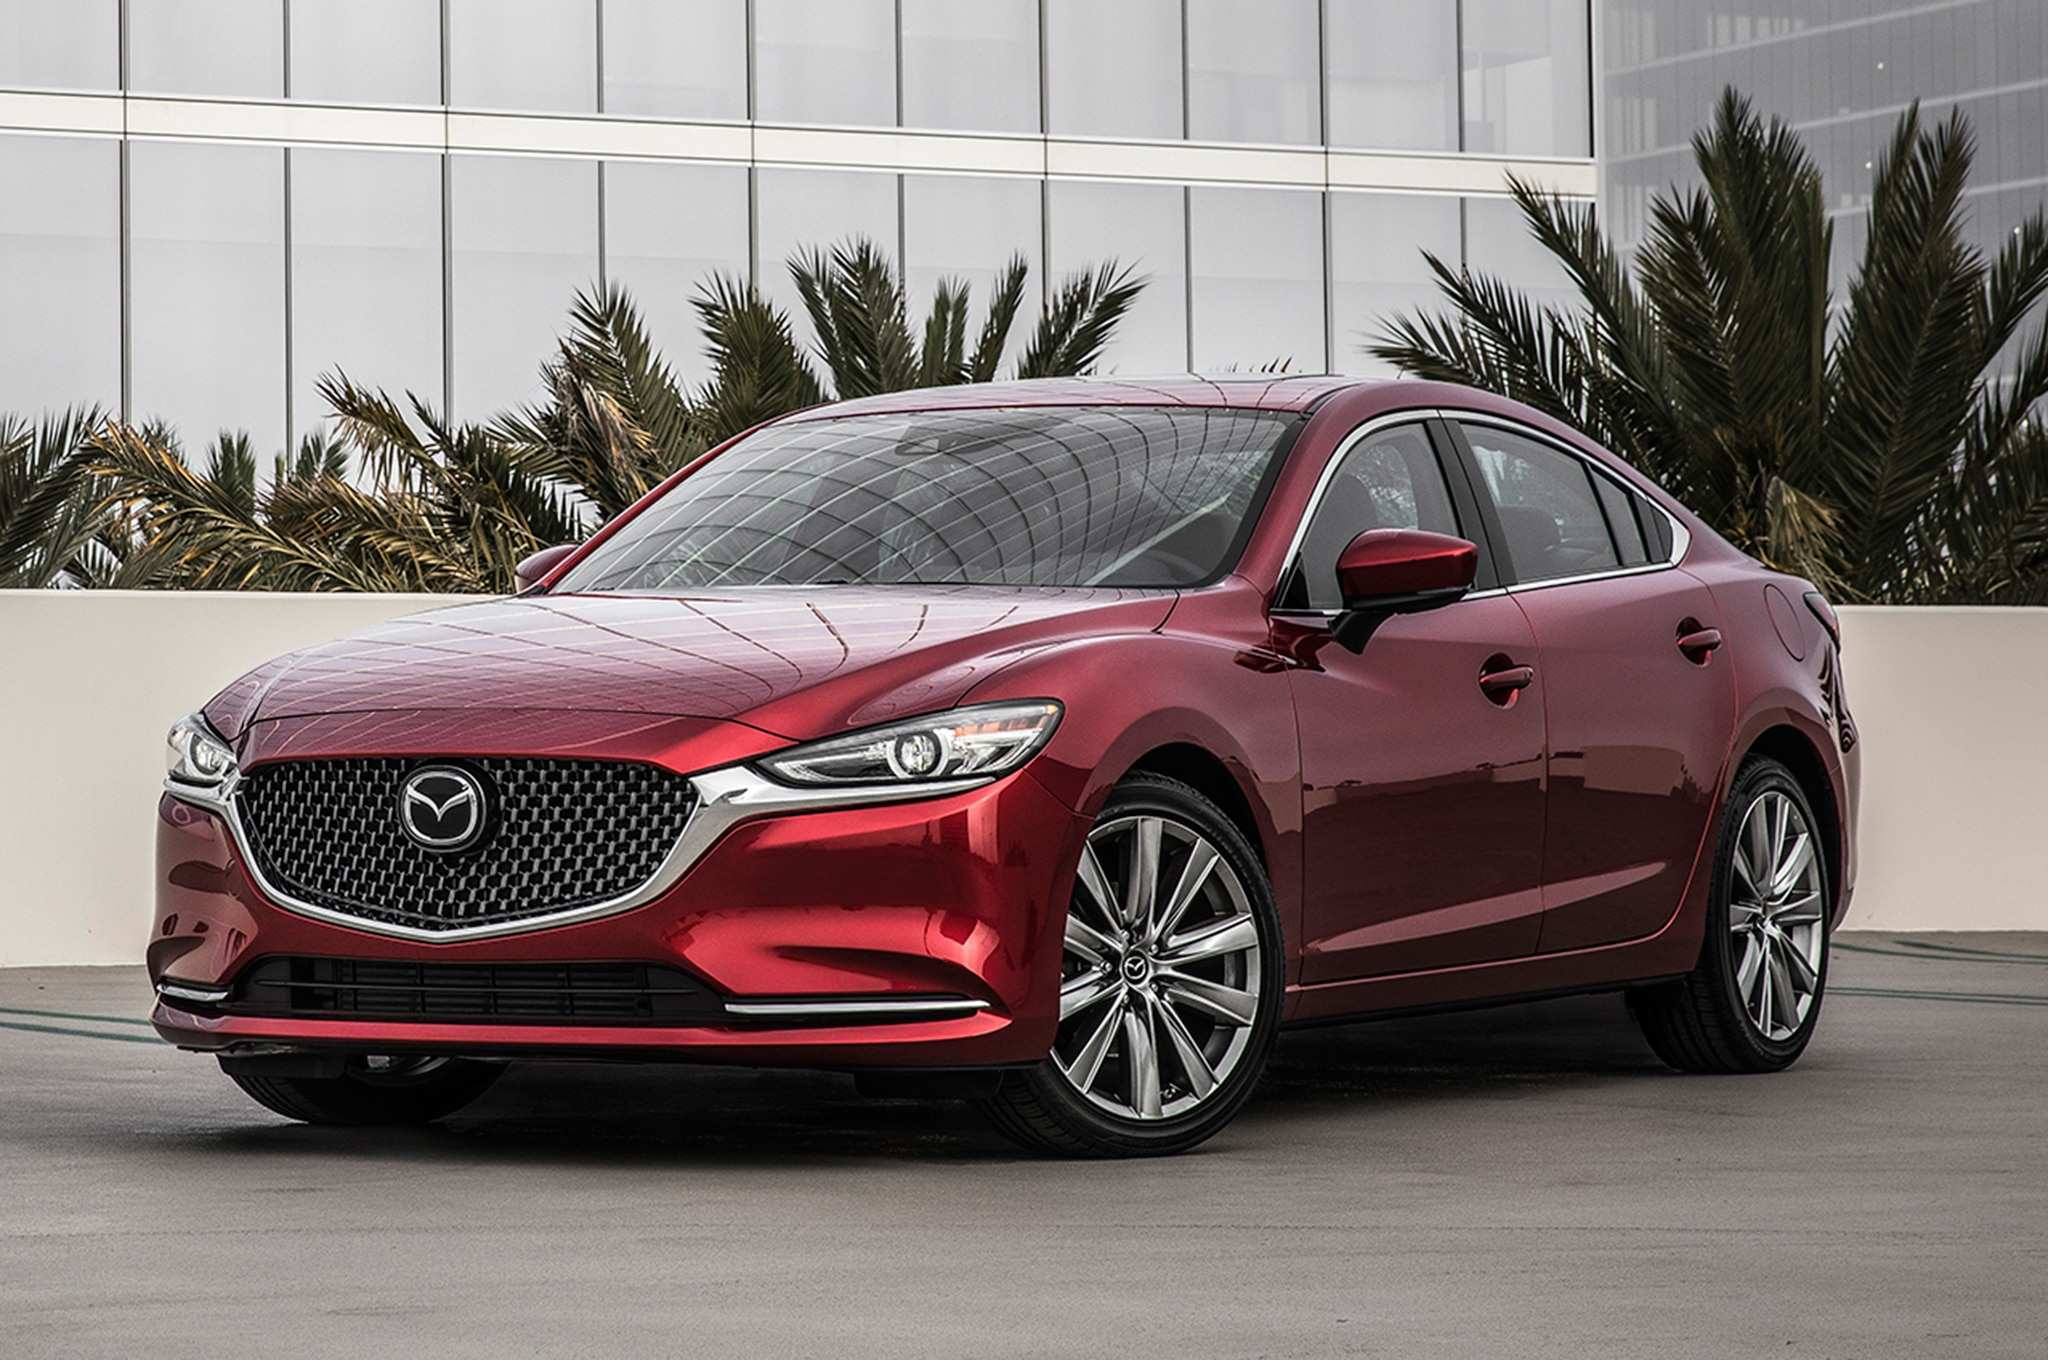 56 New Mazda 6 2019 Europe Concept Redesign And Review Release Date for Mazda 6 2019 Europe Concept Redesign And Review